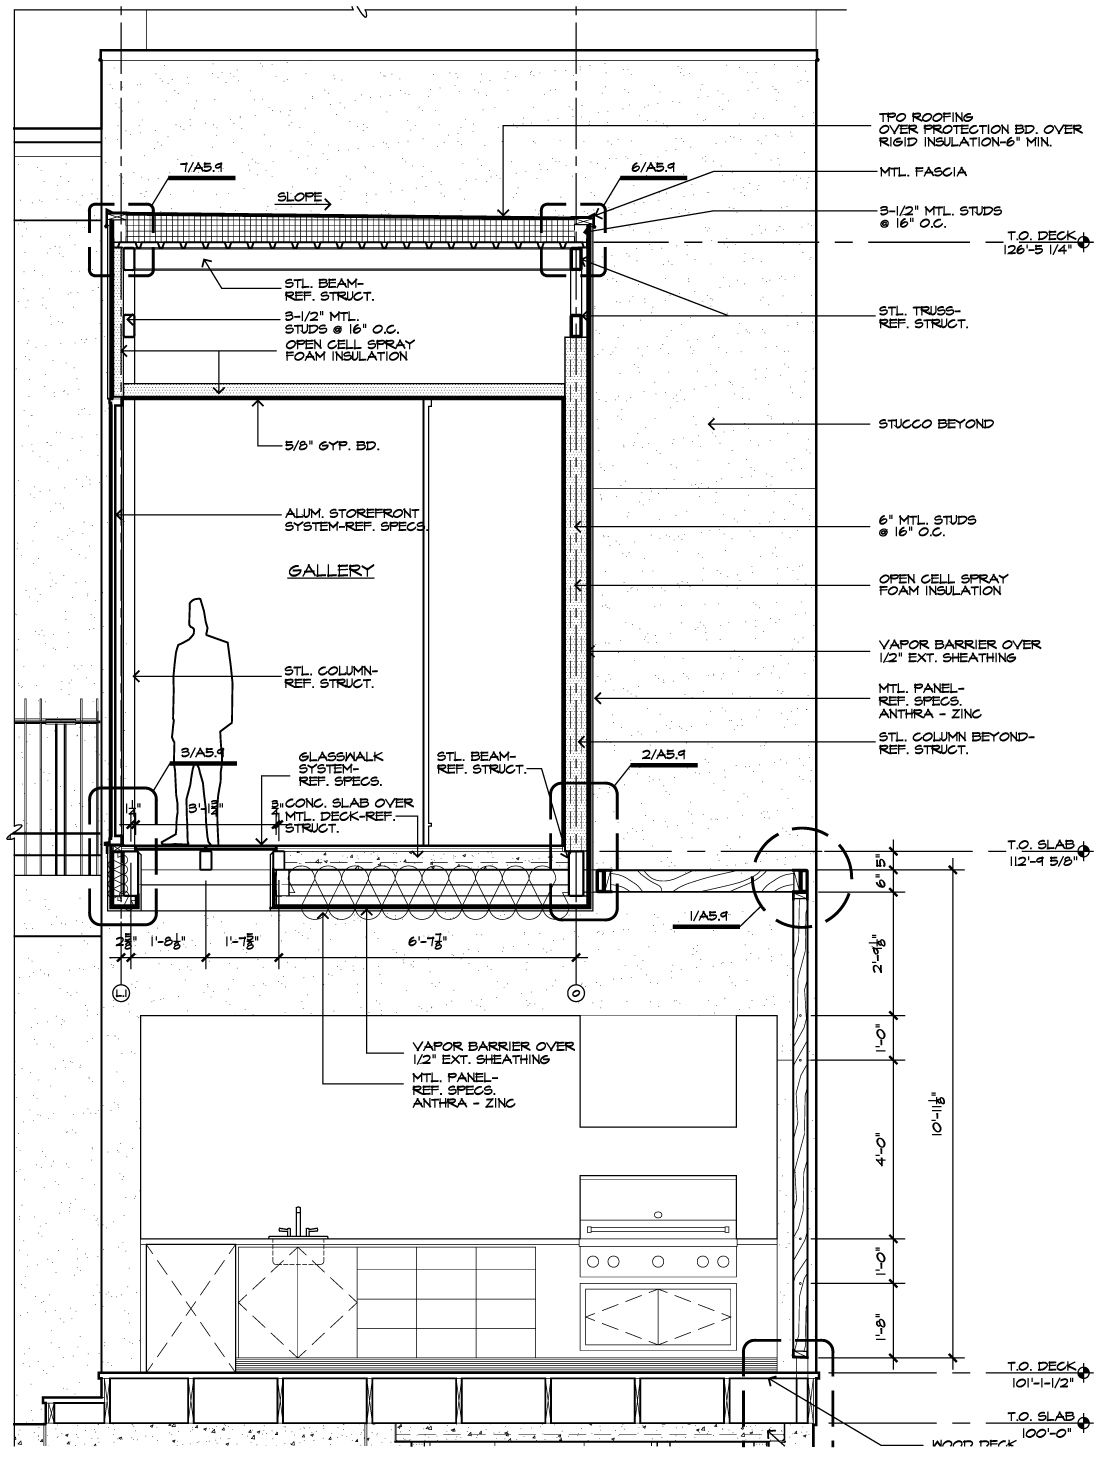 Bathroom section drawing - Bridge Wall Section